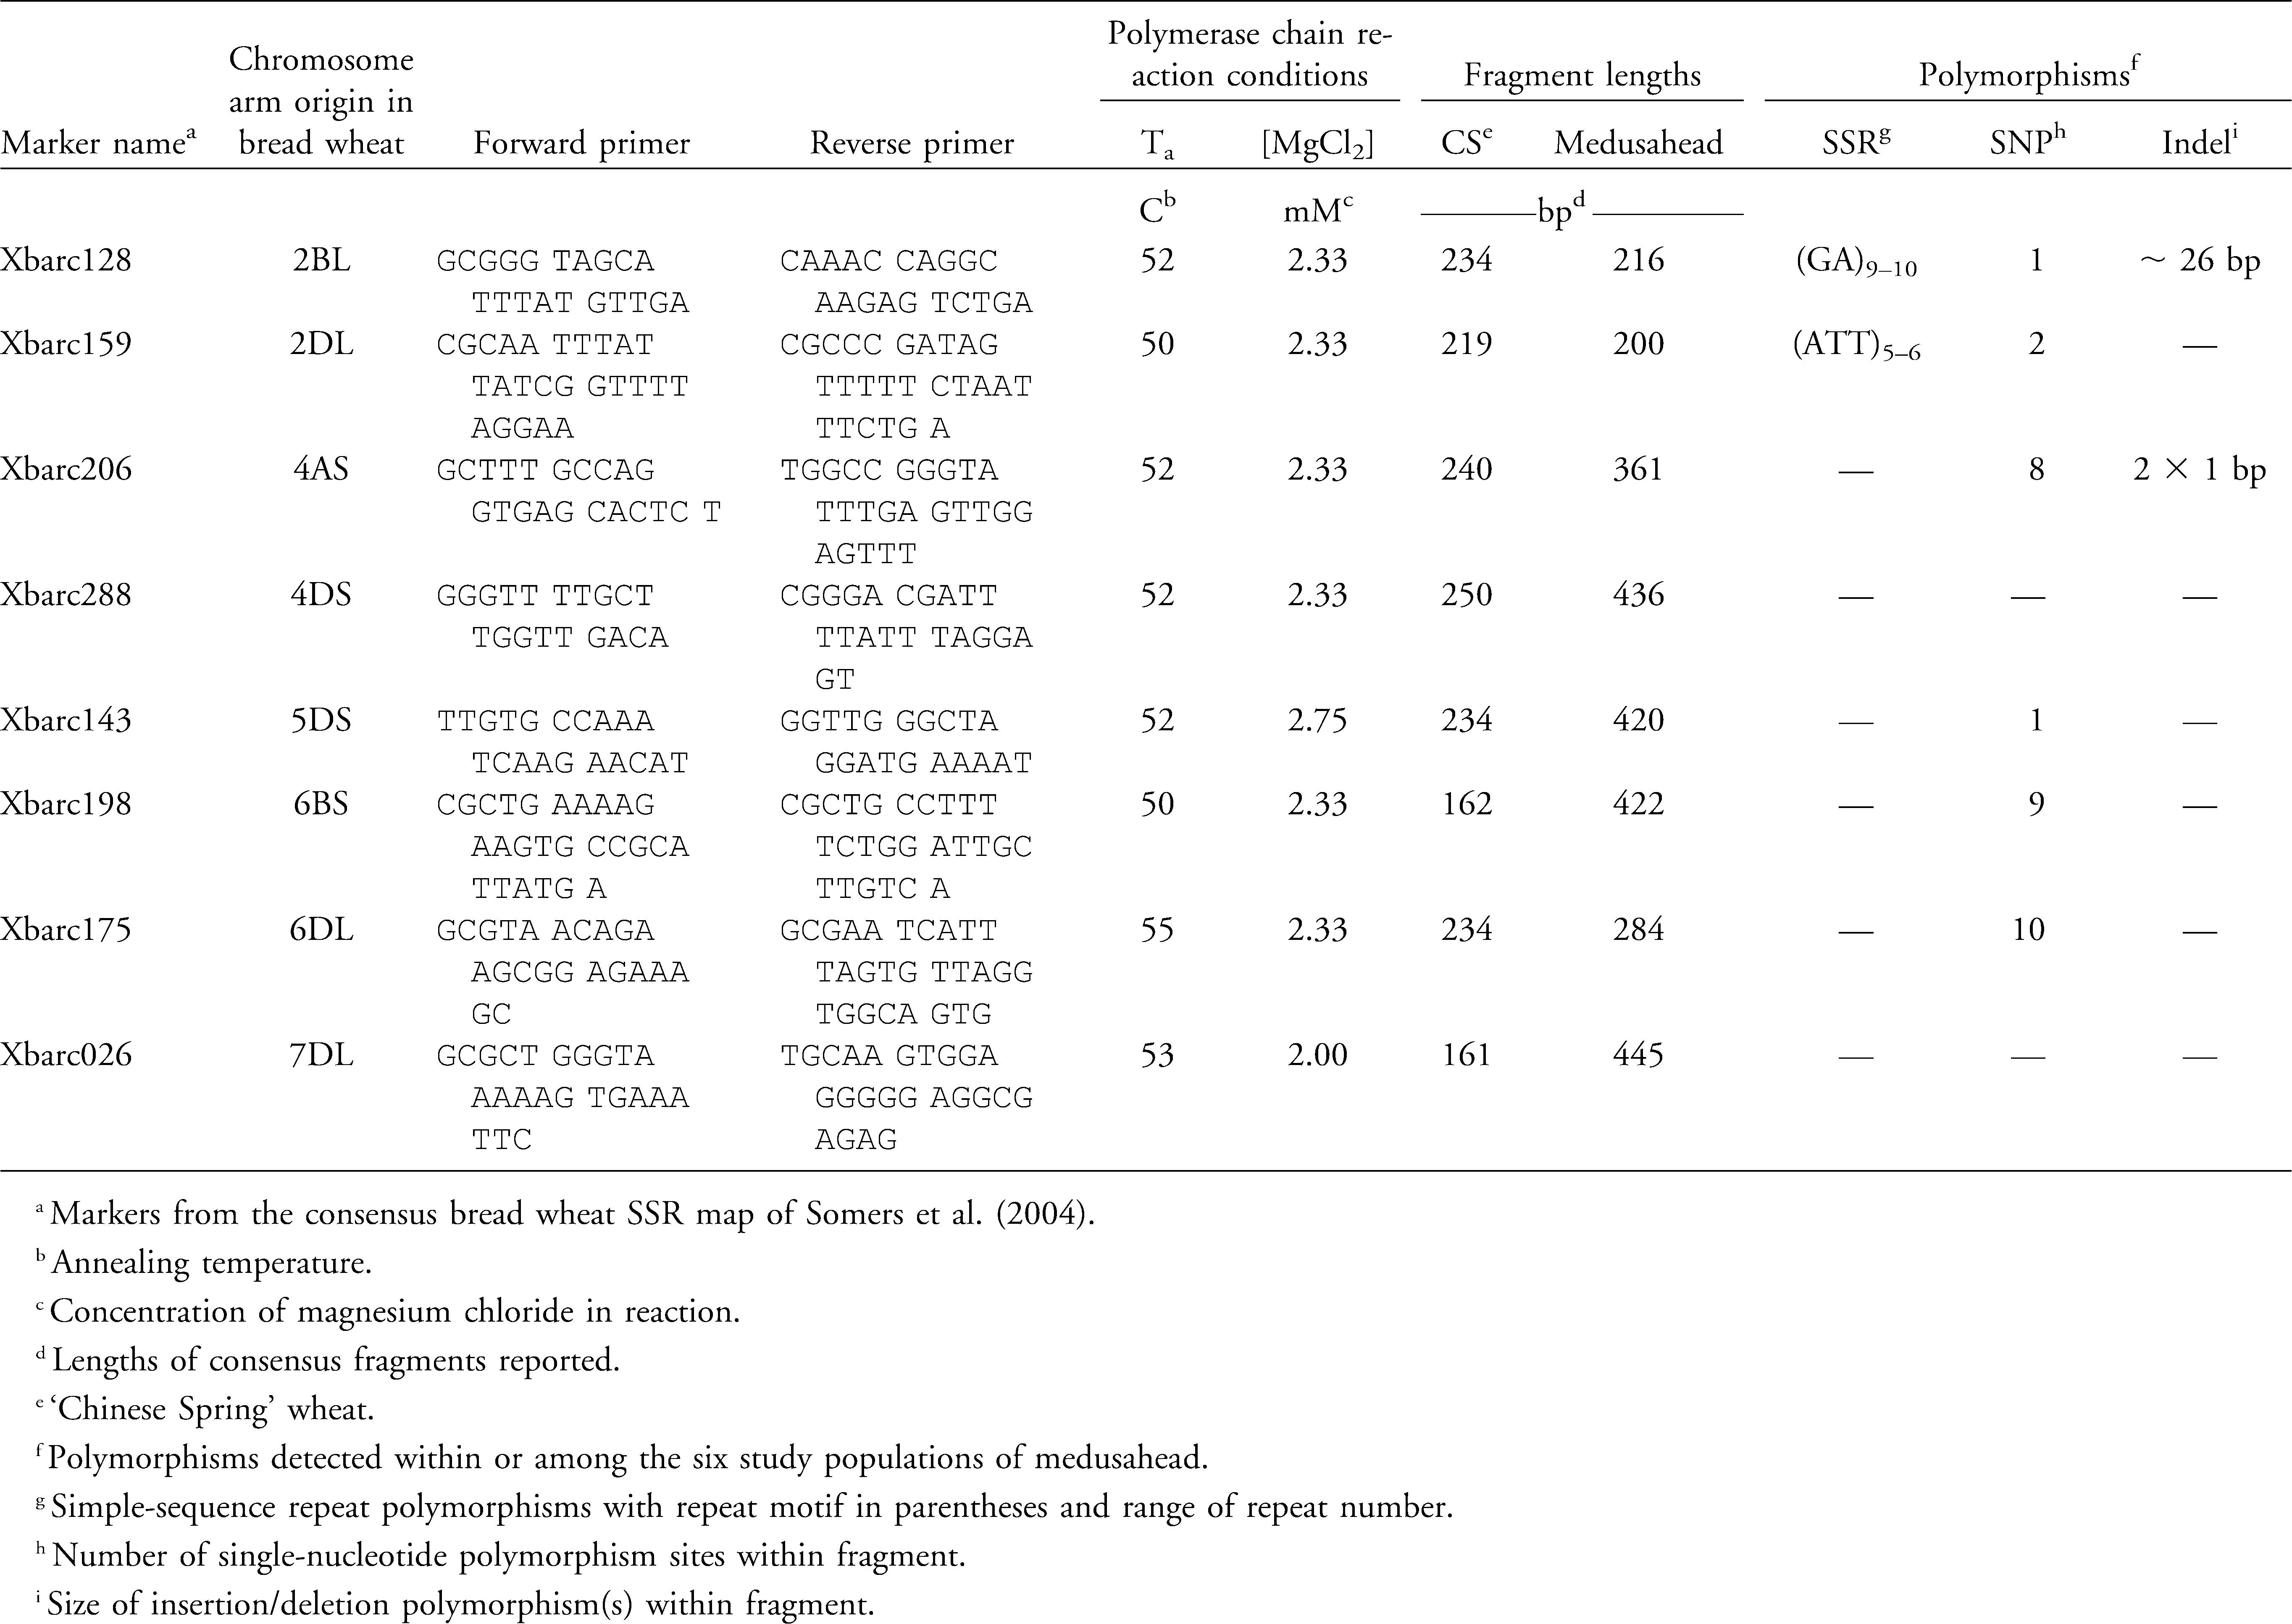 Use of Wheat SSRs to Assess Genetic Diversity in Medusahead